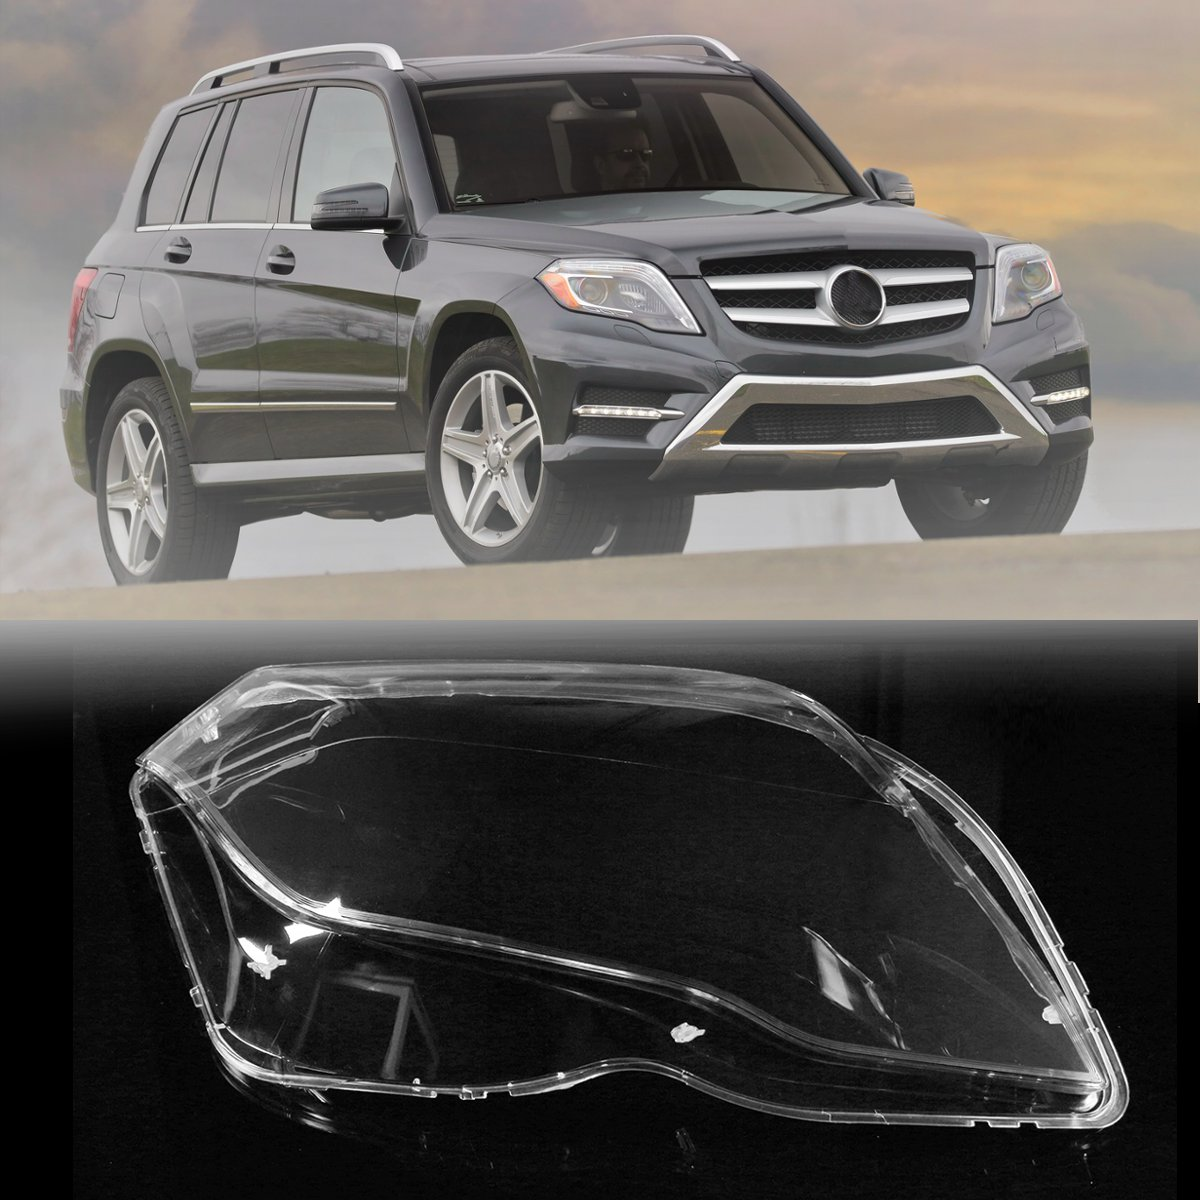 New Clear Plastic Front Right Headlamp Headlight Cover For Mercedes/Benz GLK 2013 2014 2015 black rear trunk security shade cargo cover for mercedes benz glk class x204 20082009 2010 2011 2012 2013 2014 2015